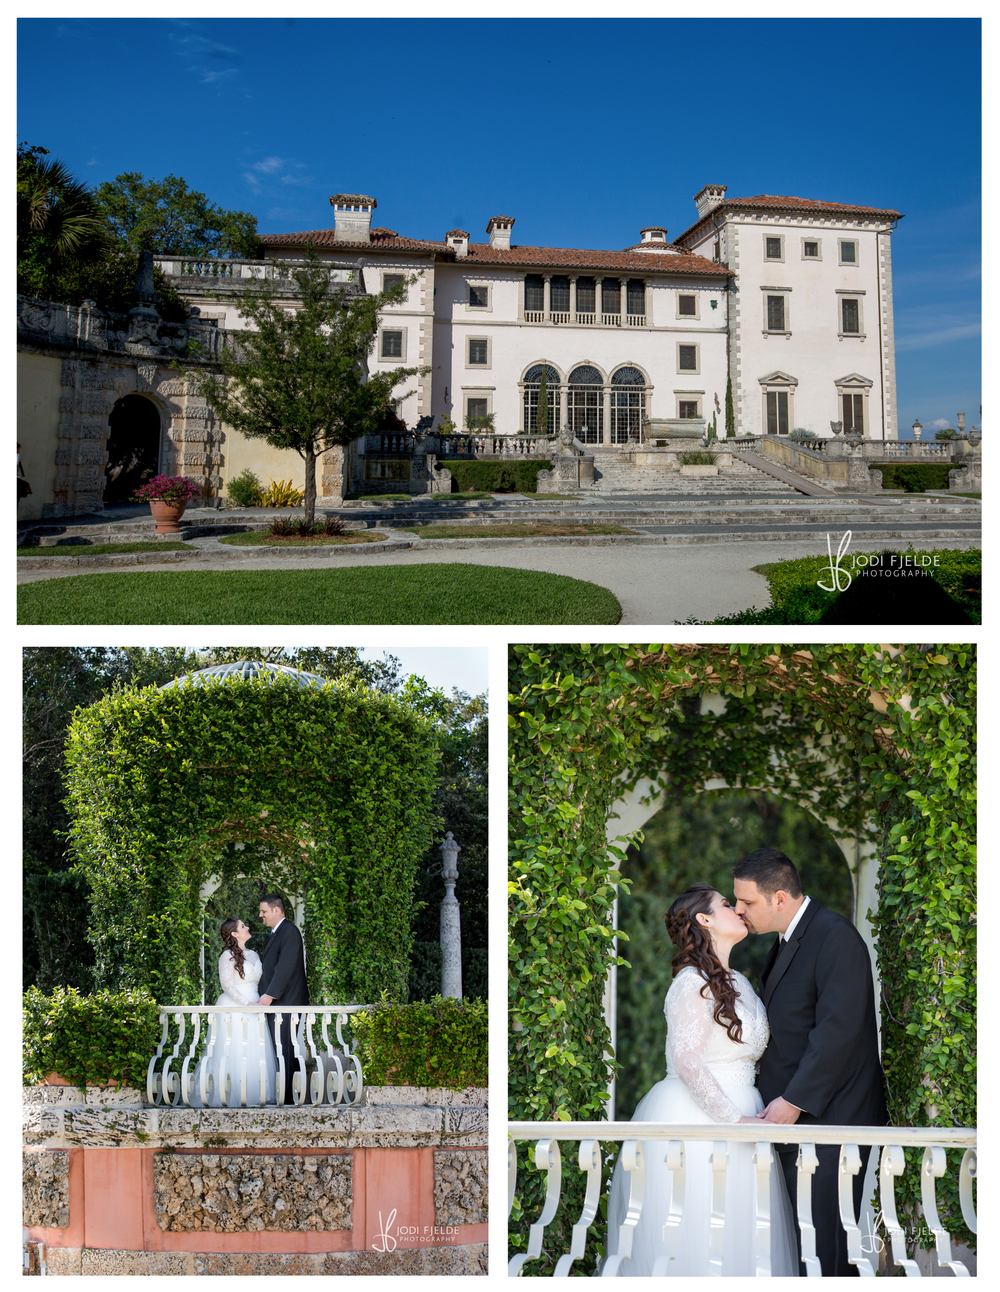 Vizcaya_Miami_Florida_Bridal_Wedding_Portraits_Jodi_Fjelde_Photography-10.jpg